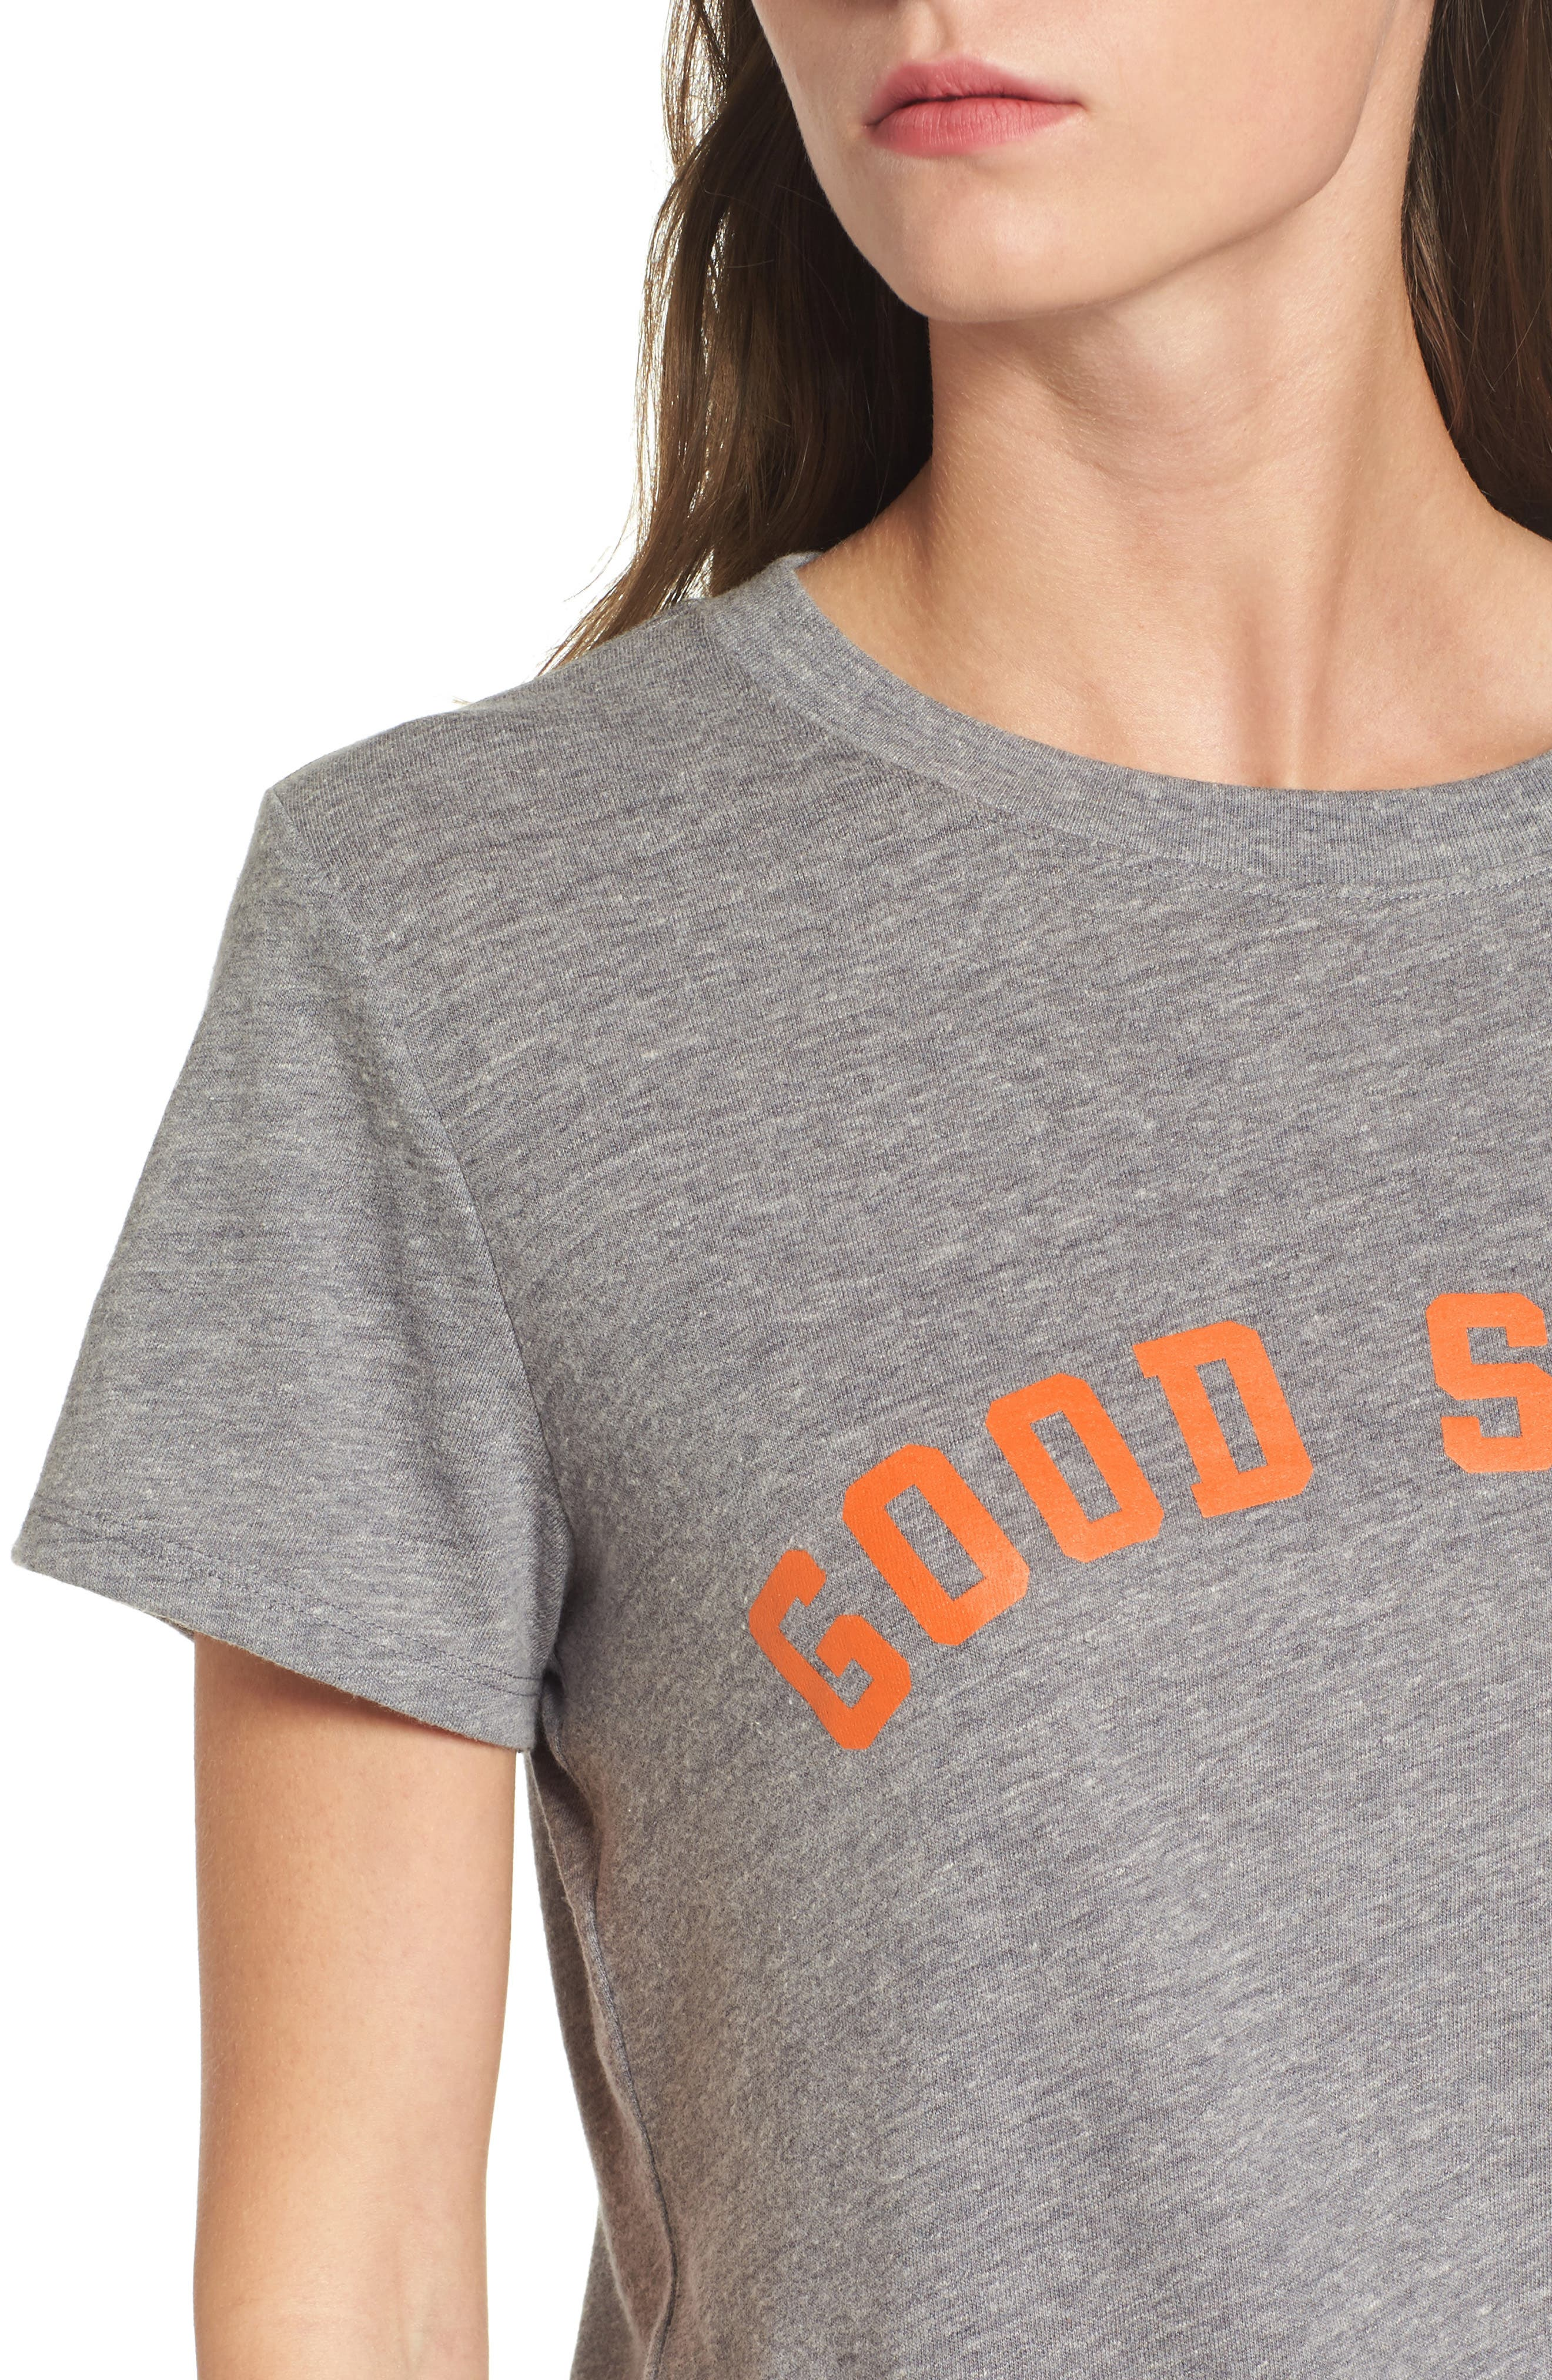 Good Sport Graphic Tee,                             Alternate thumbnail 4, color,                             050